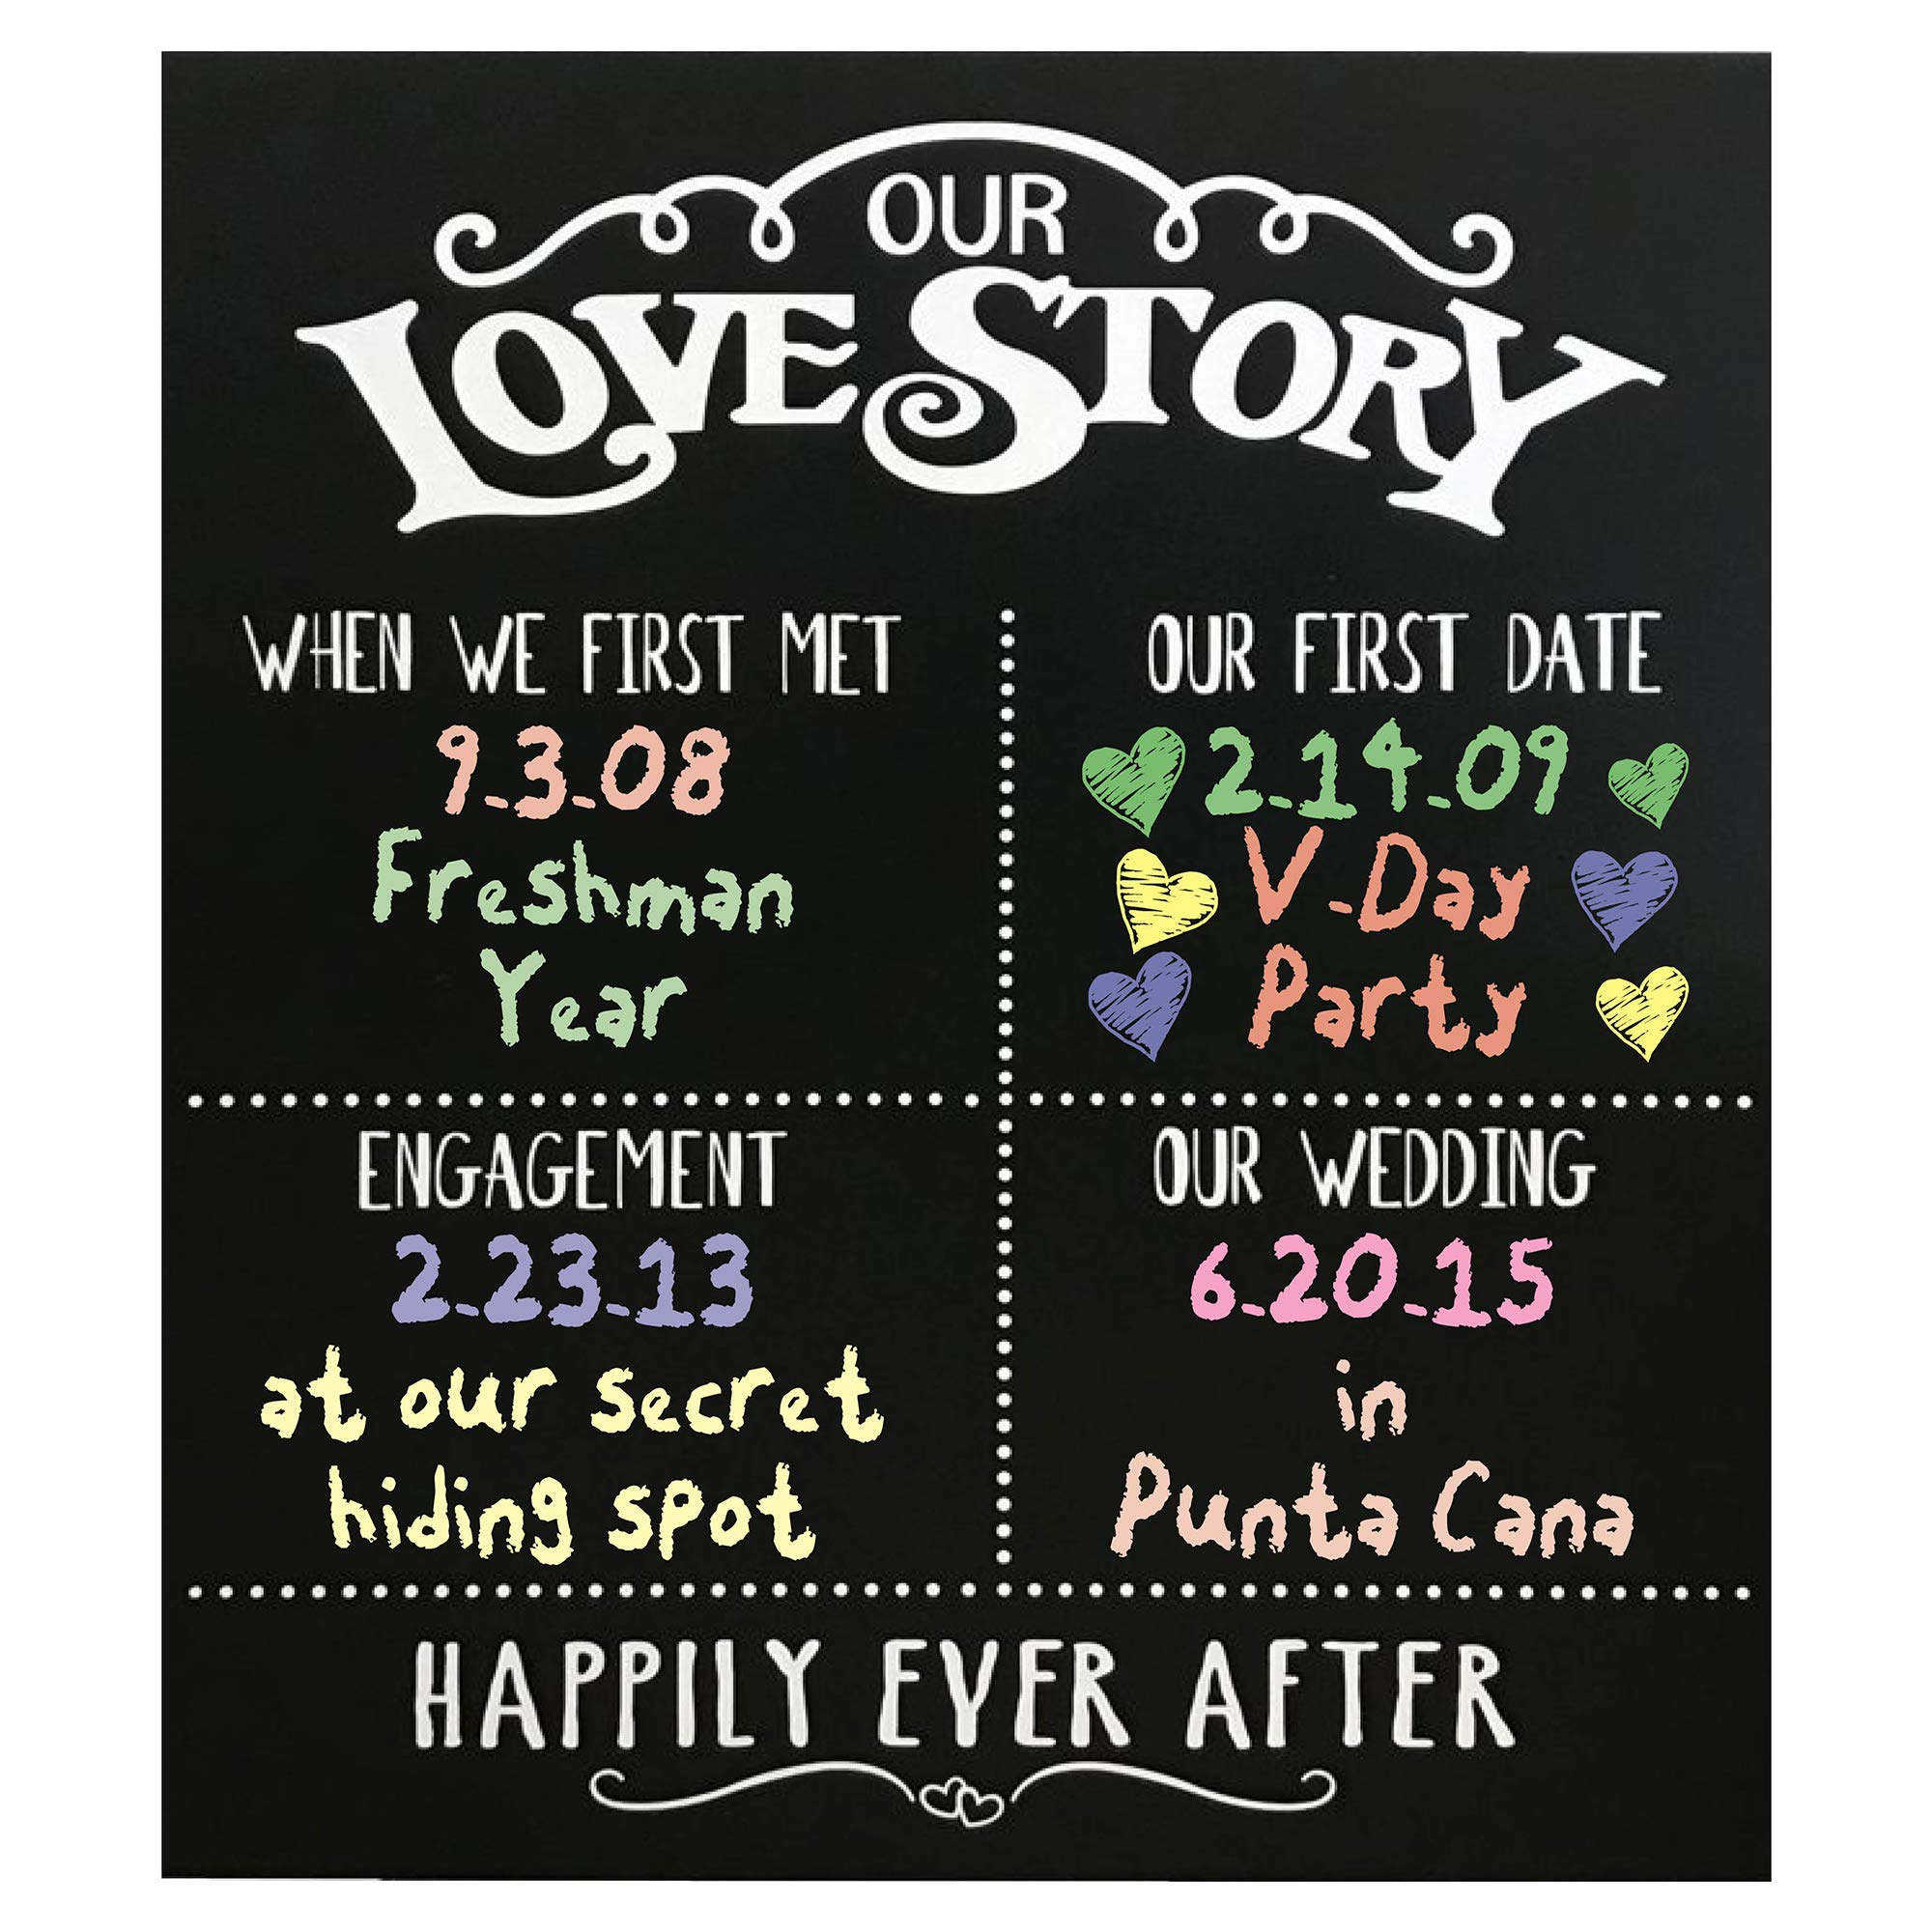 JennyGems - Our Love Story Chalkboard - First Met - First Date - Engagement Party Decor - Wedding - Anniversary - Happily Ever After - Photo Shoot Prop - Wedding Signs